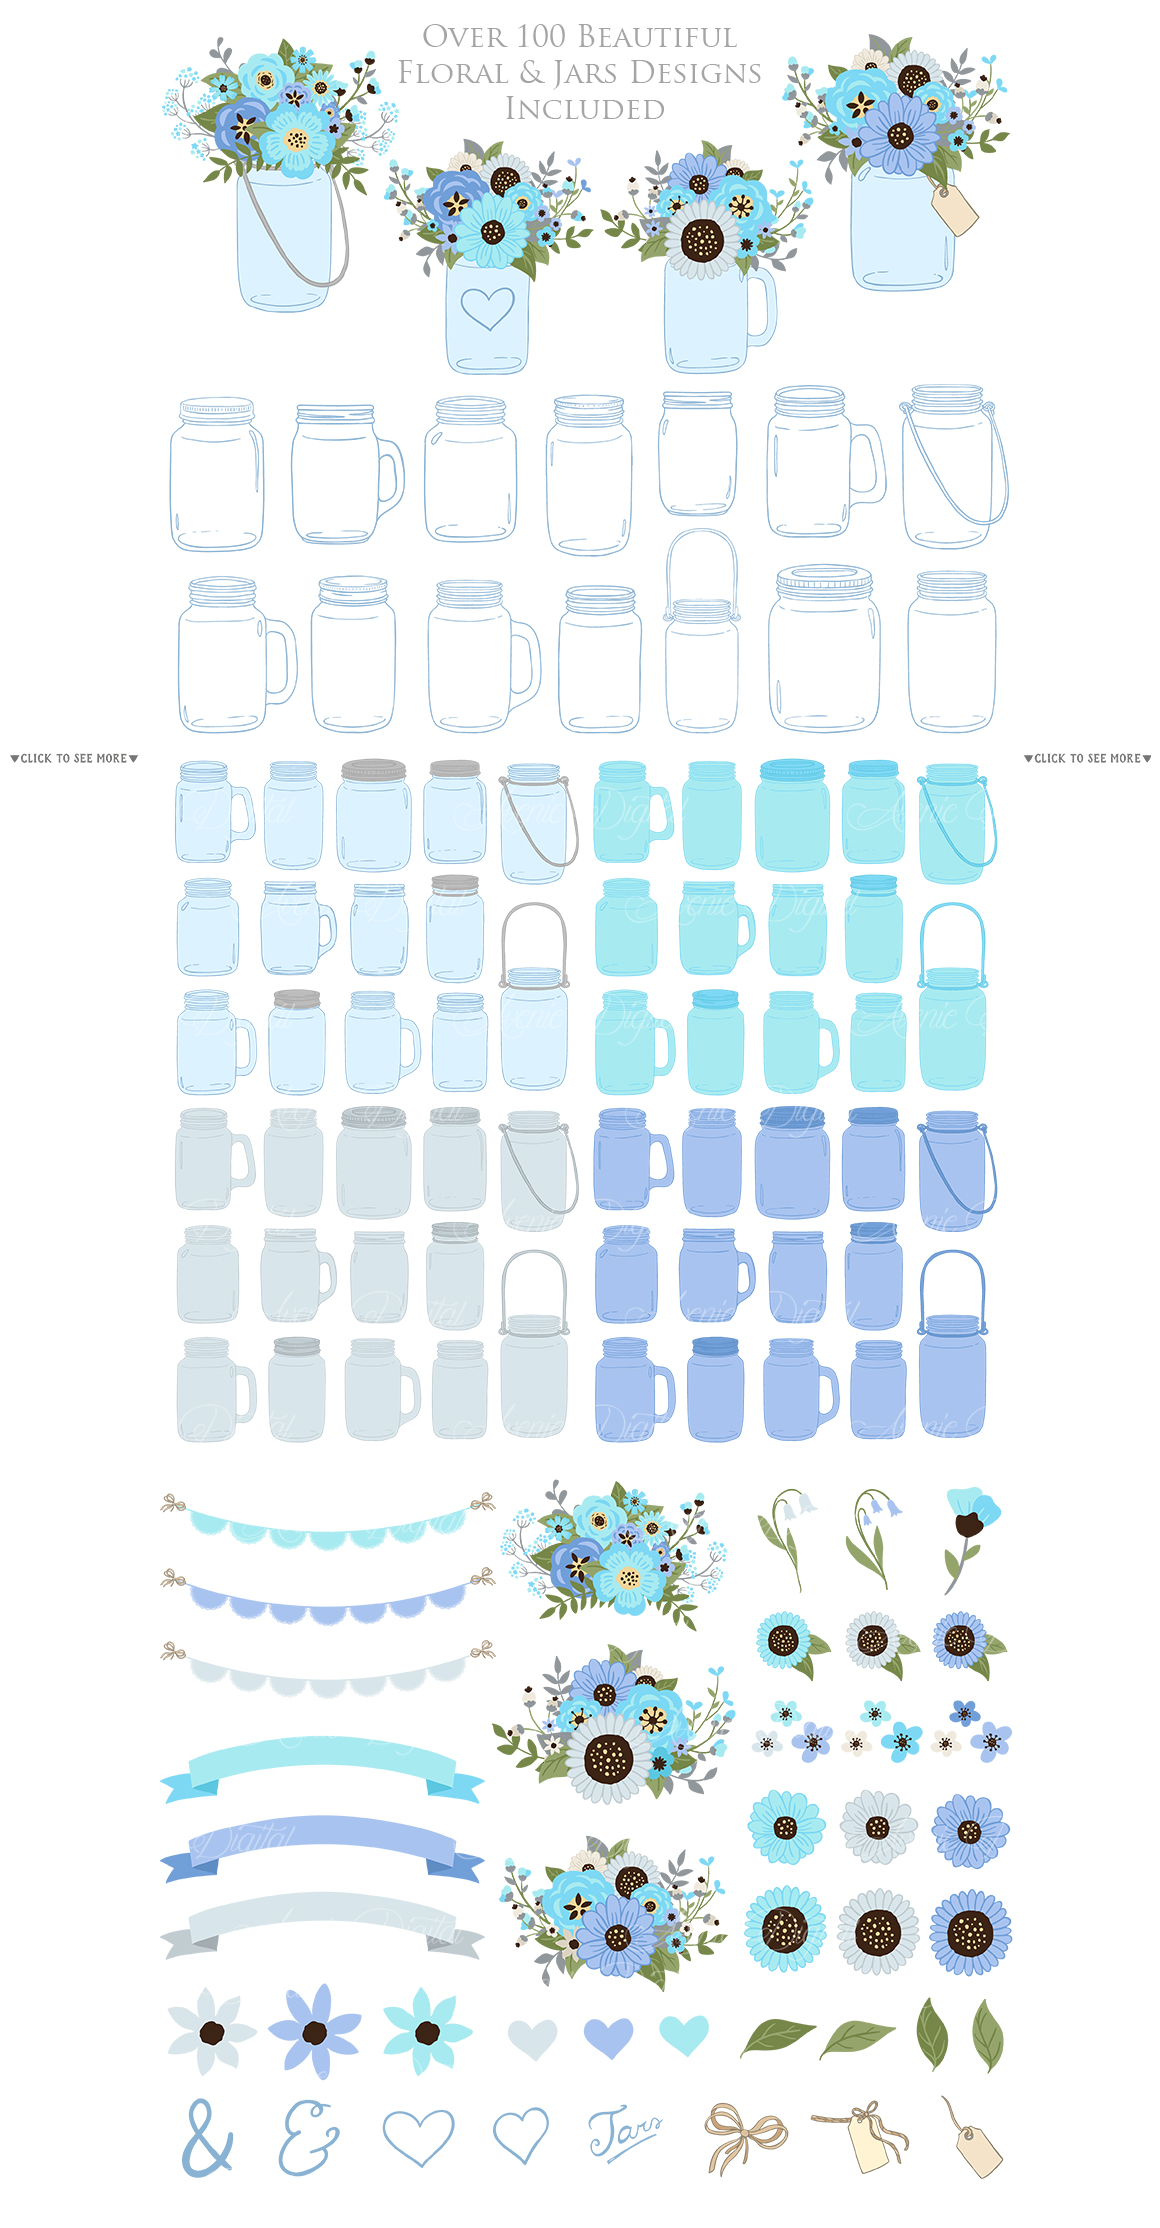 Blue and Gray Floral Mason Jar Wedding Clipart example image 2